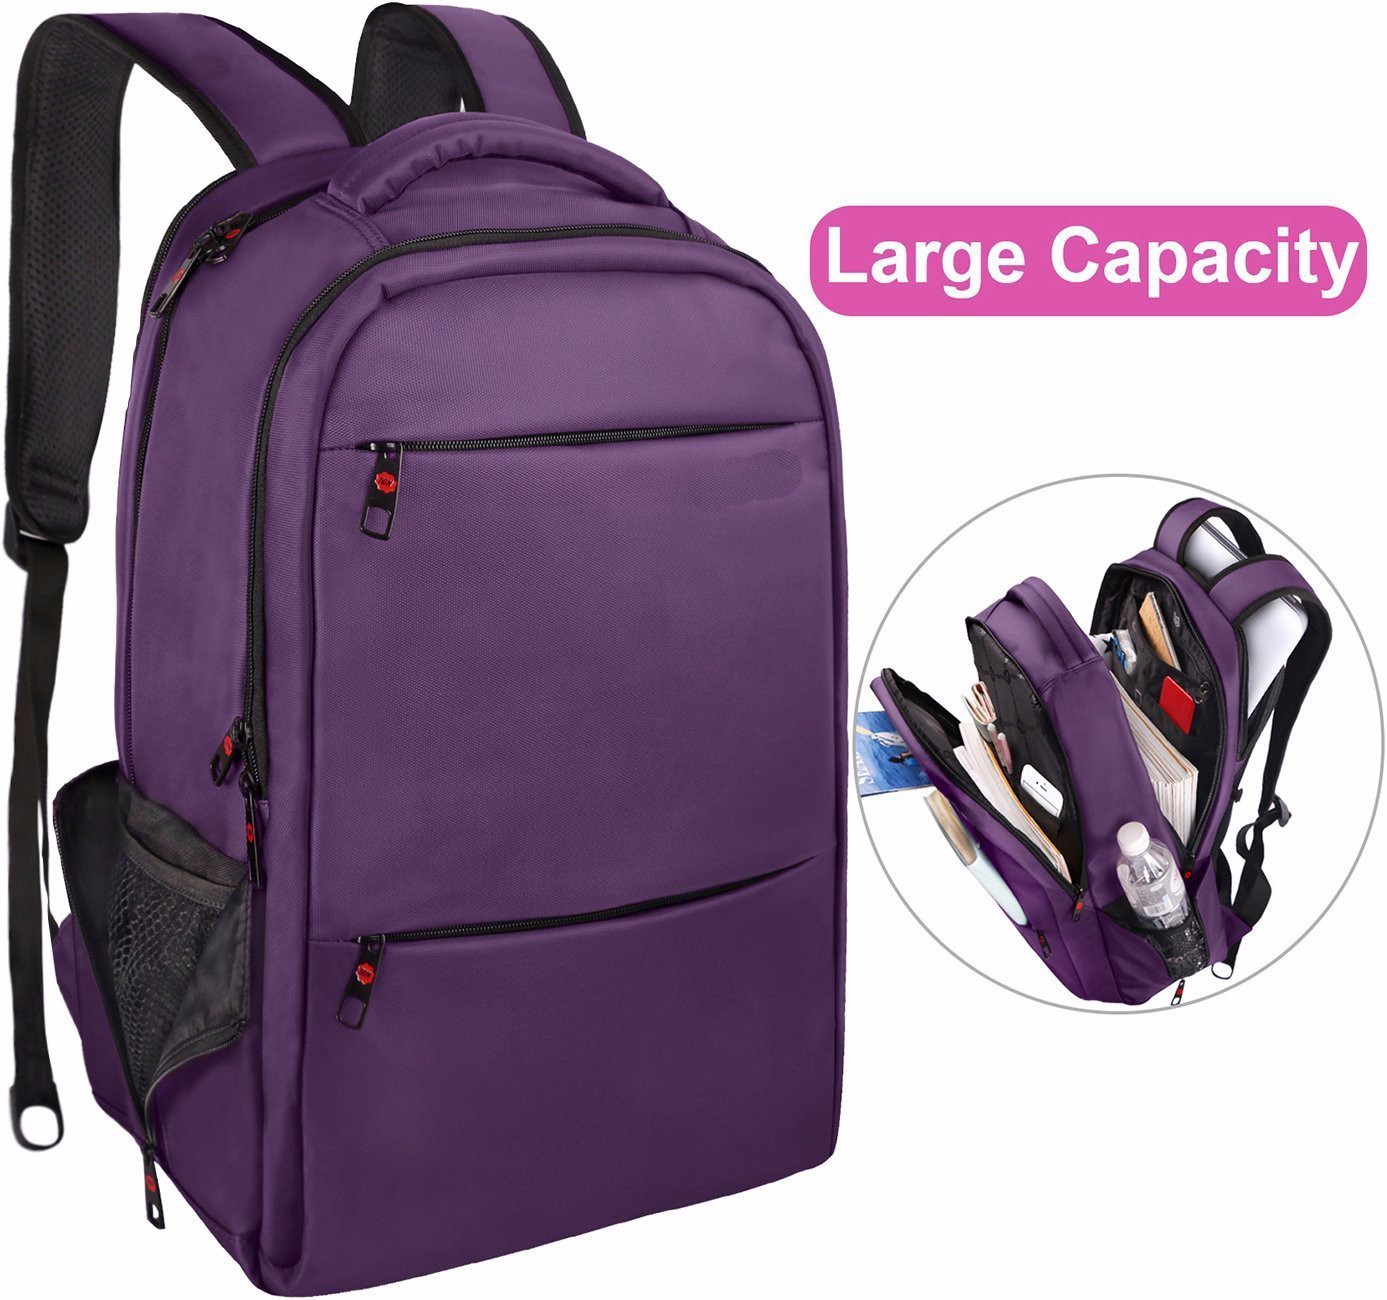 Laptop Bags For Women Manufacturers, Laptop Bags For Women Factory, Supply Laptop Bags For Women